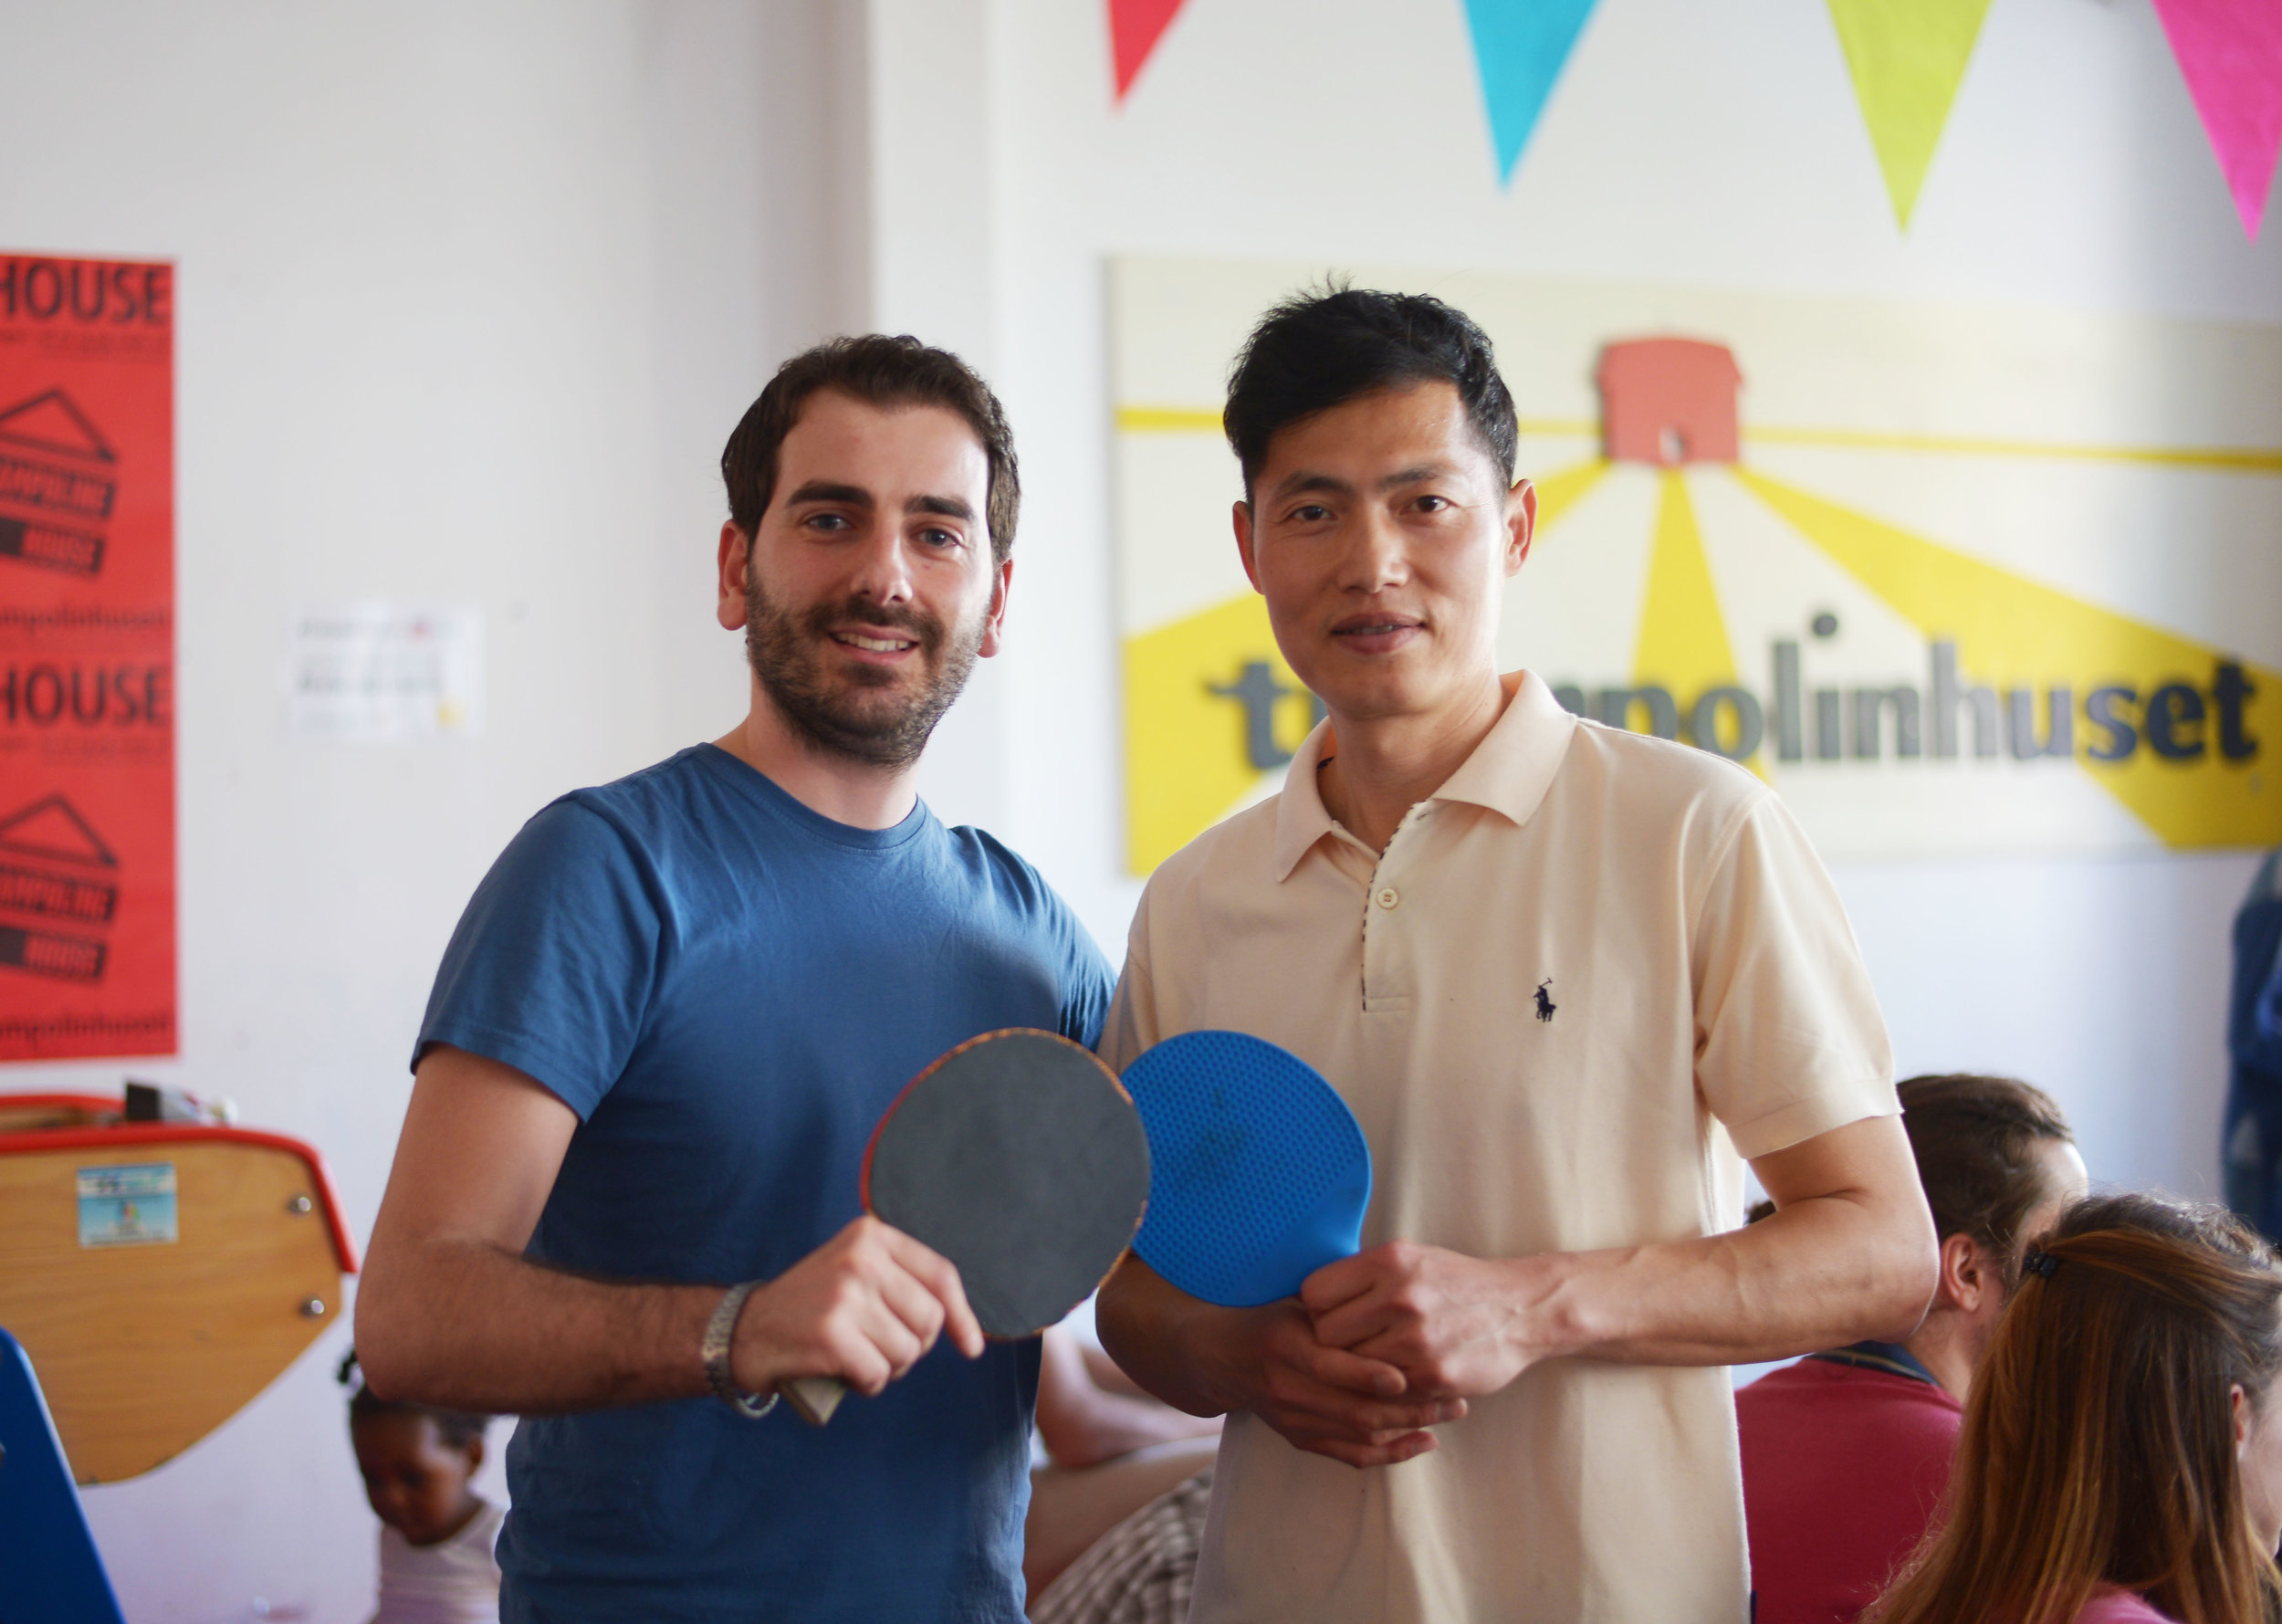 David (right) organizes ping-pong workshops every Friday in Trampoline House. Photo: Anna Emy